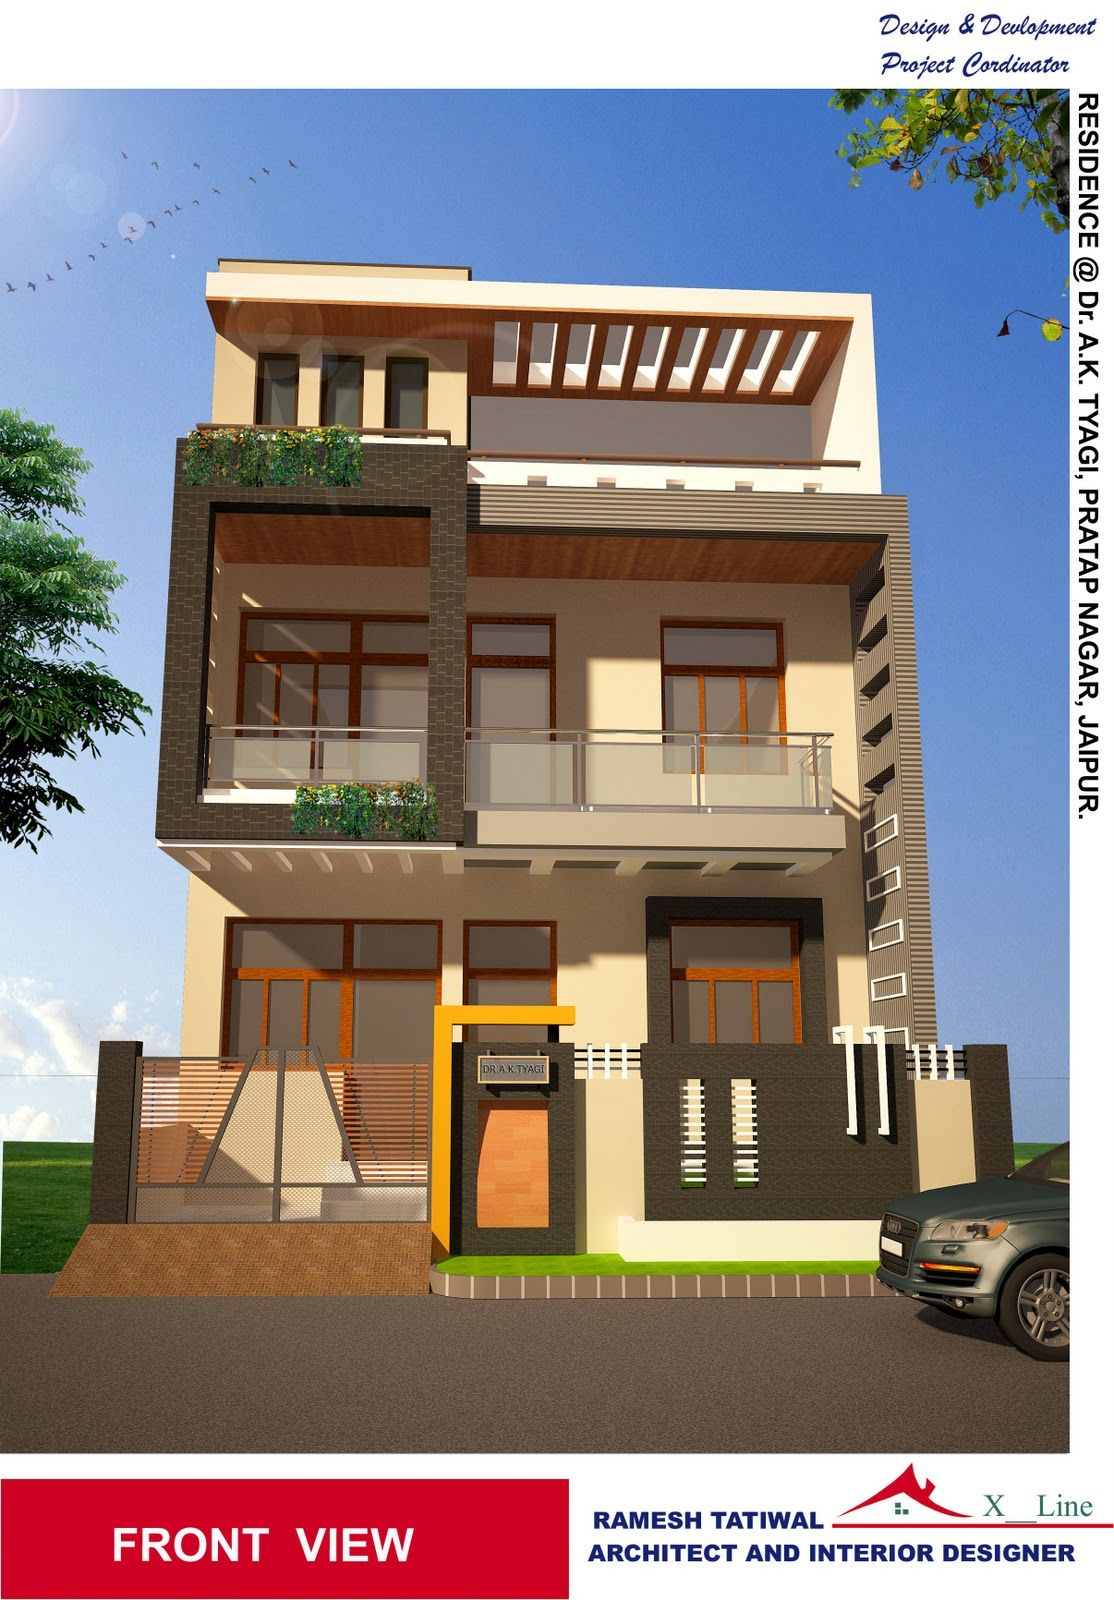 Housedesigns modern indian home architecture design from House designs indian style pictures